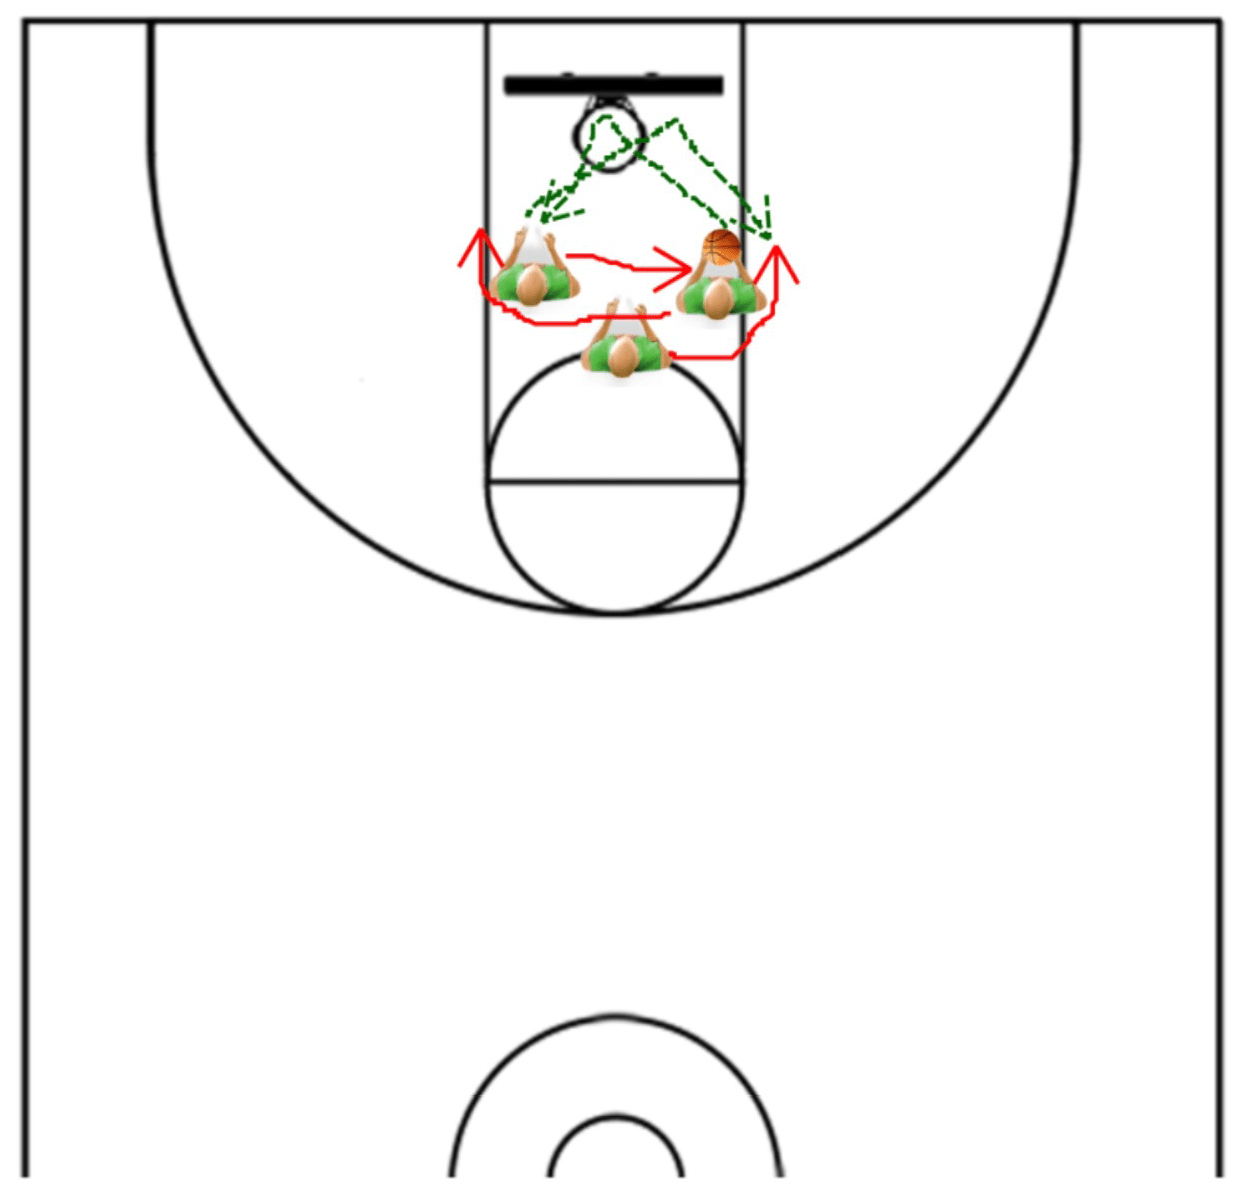 3 Secrets For Increasing Your Offensive Rebound Total